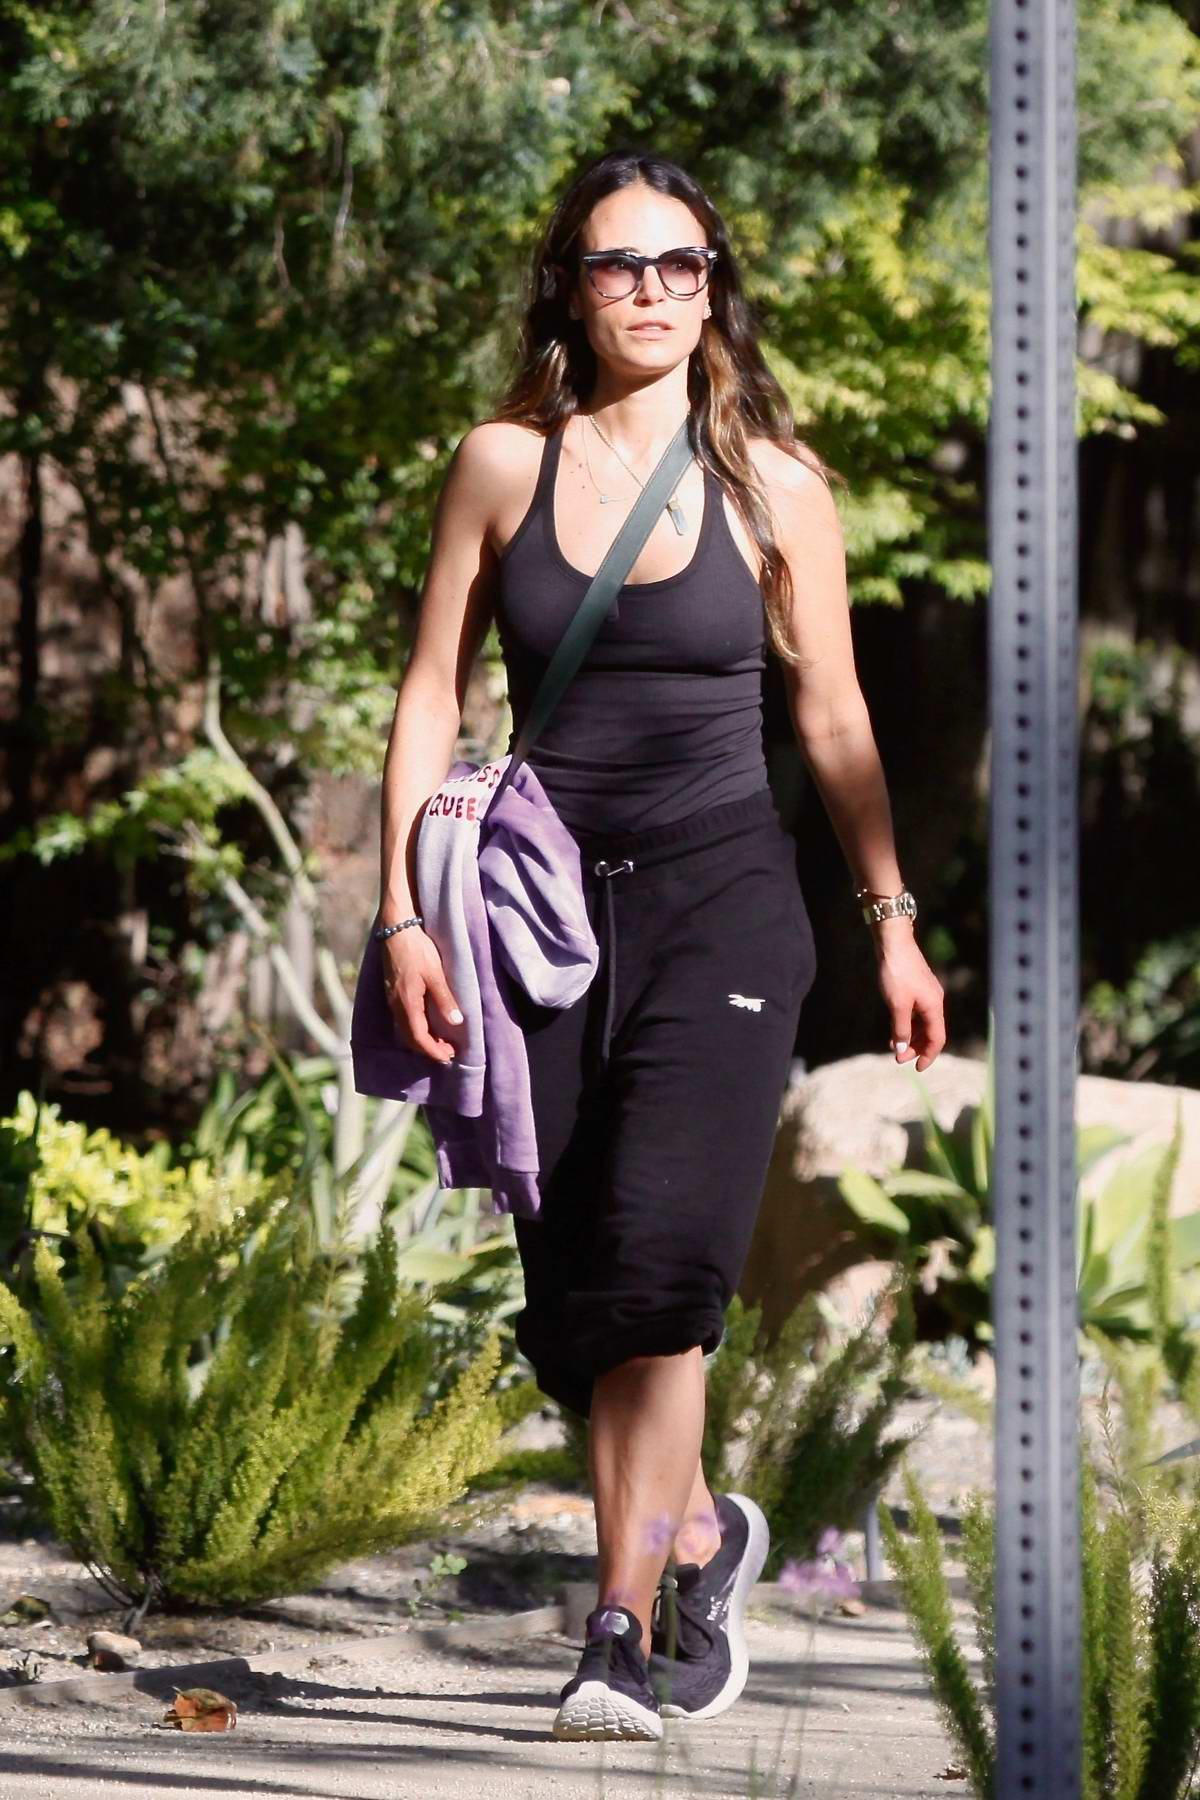 Jordana Brewster looks in fit form as she takes an afternoon stroll in Pacific Palisades, California